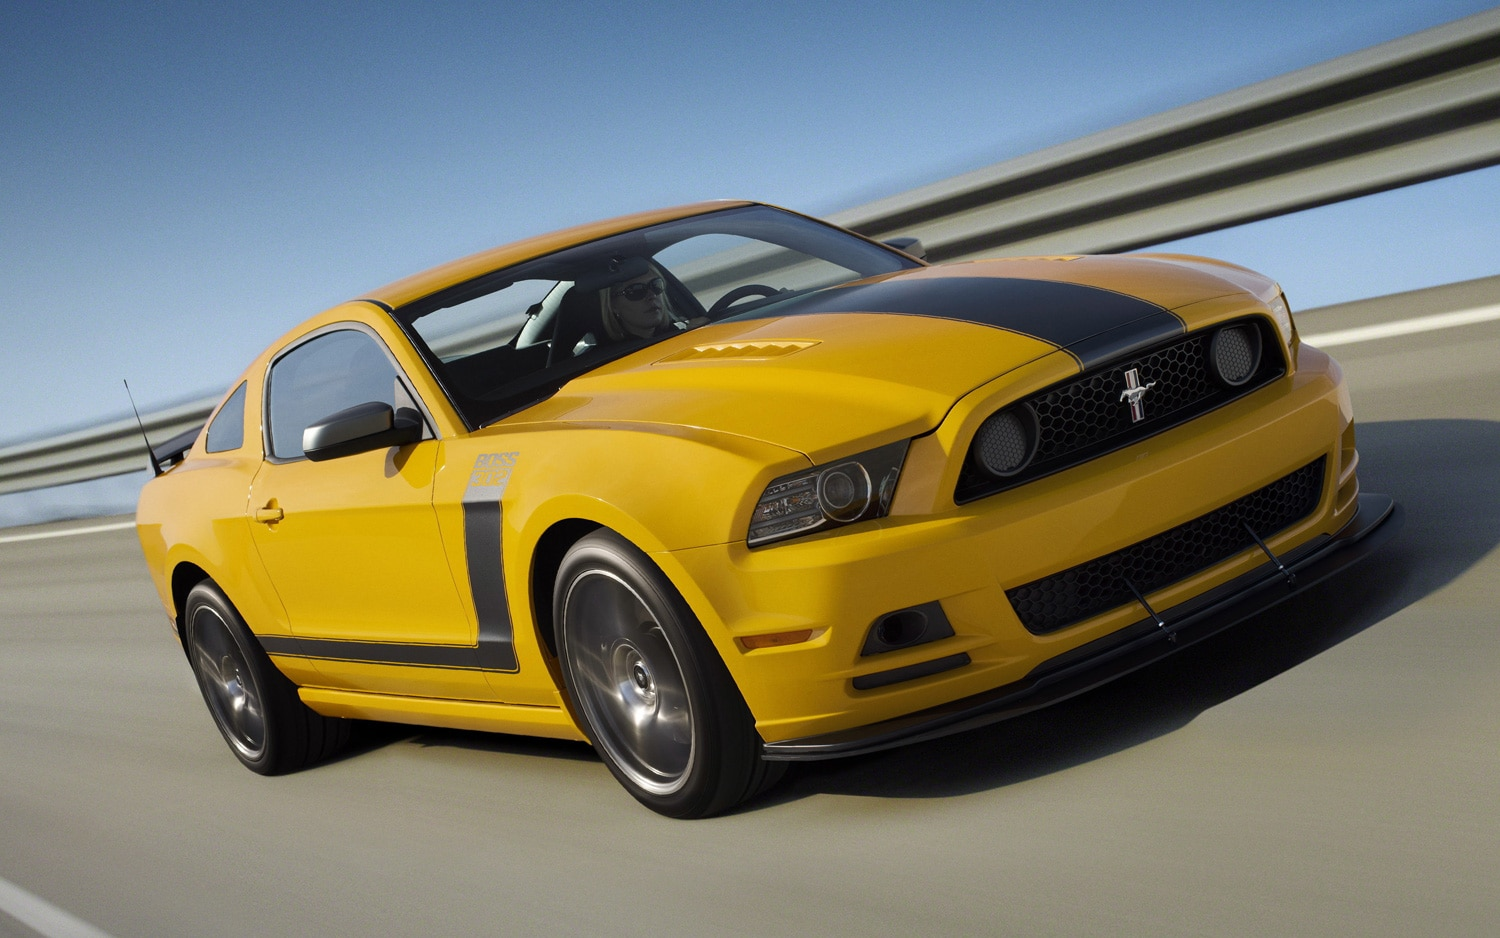 2013 Ford Mustang Boss 302 On Track In Motion1